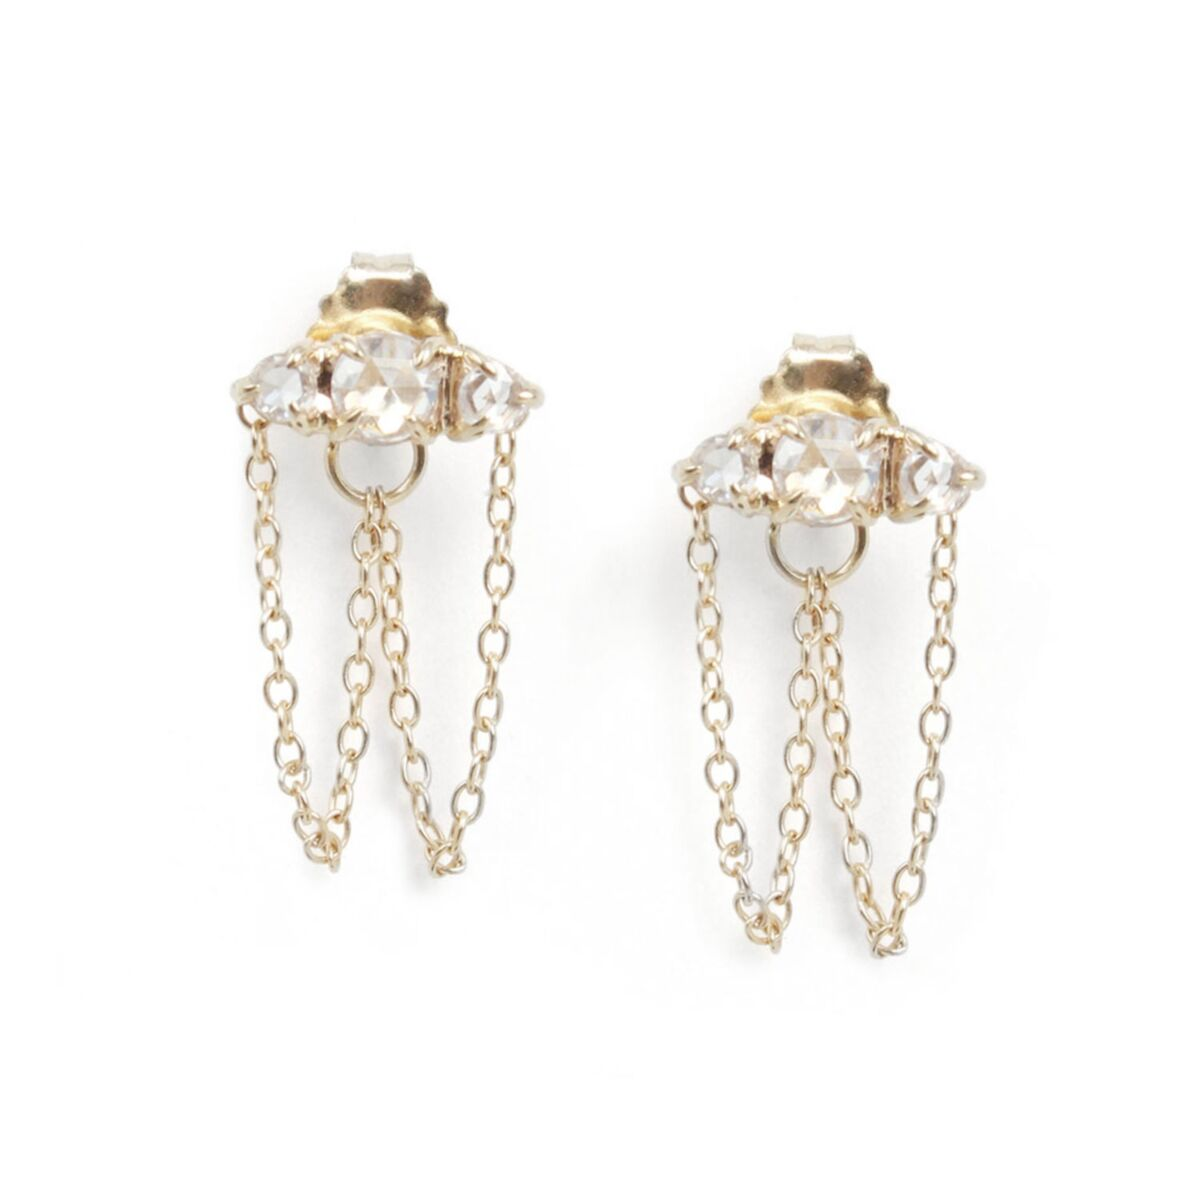 Sleeping Beauty Chandelier Earring (single) image